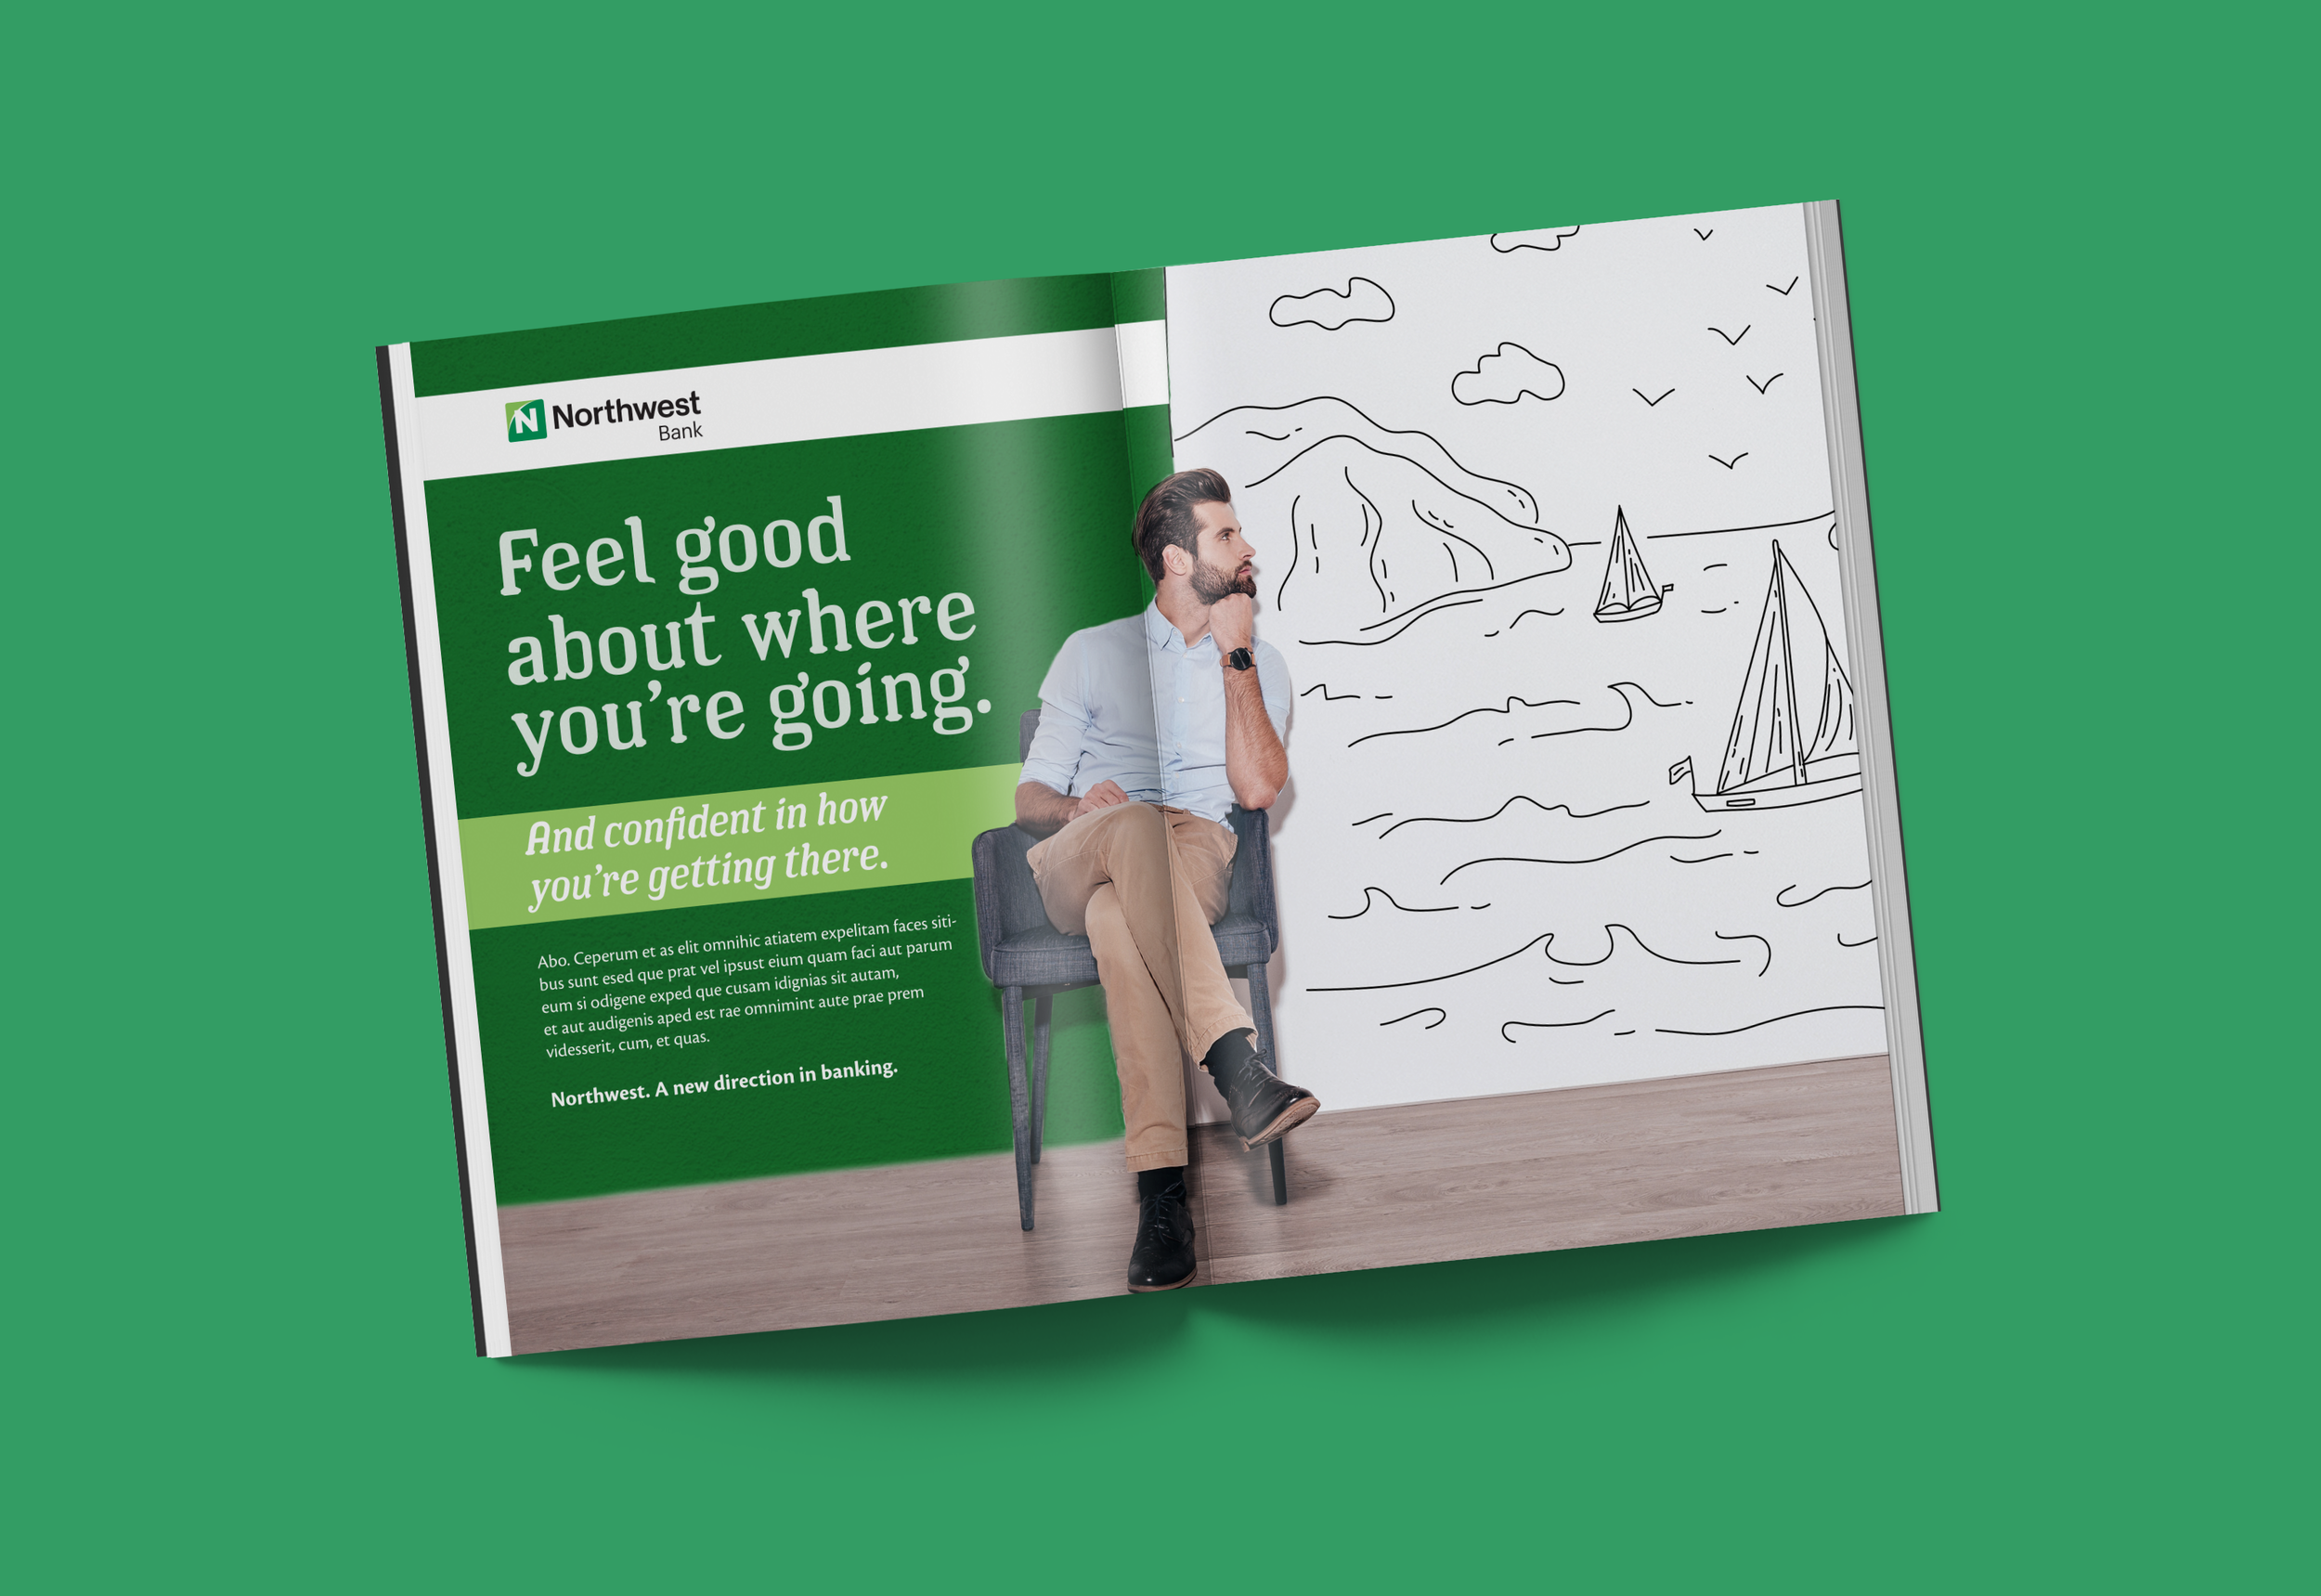 NORTHWEST BANK |  Focus on what matters